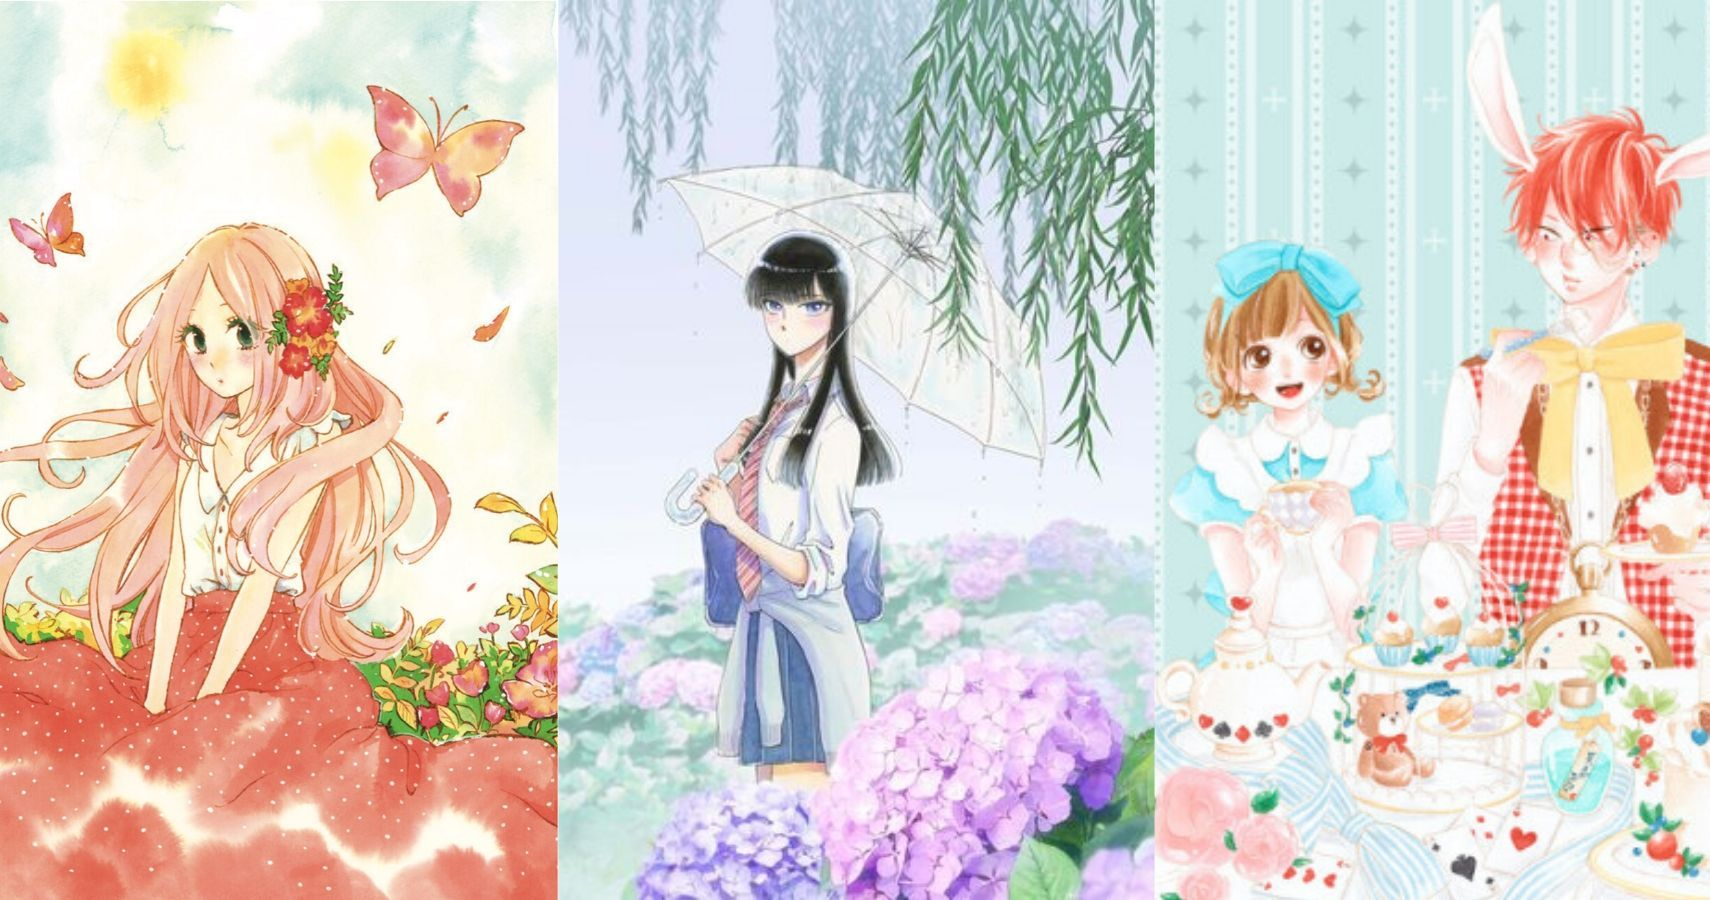 The 15 Greatest Romance Manga Of The Decade According To Goodreads